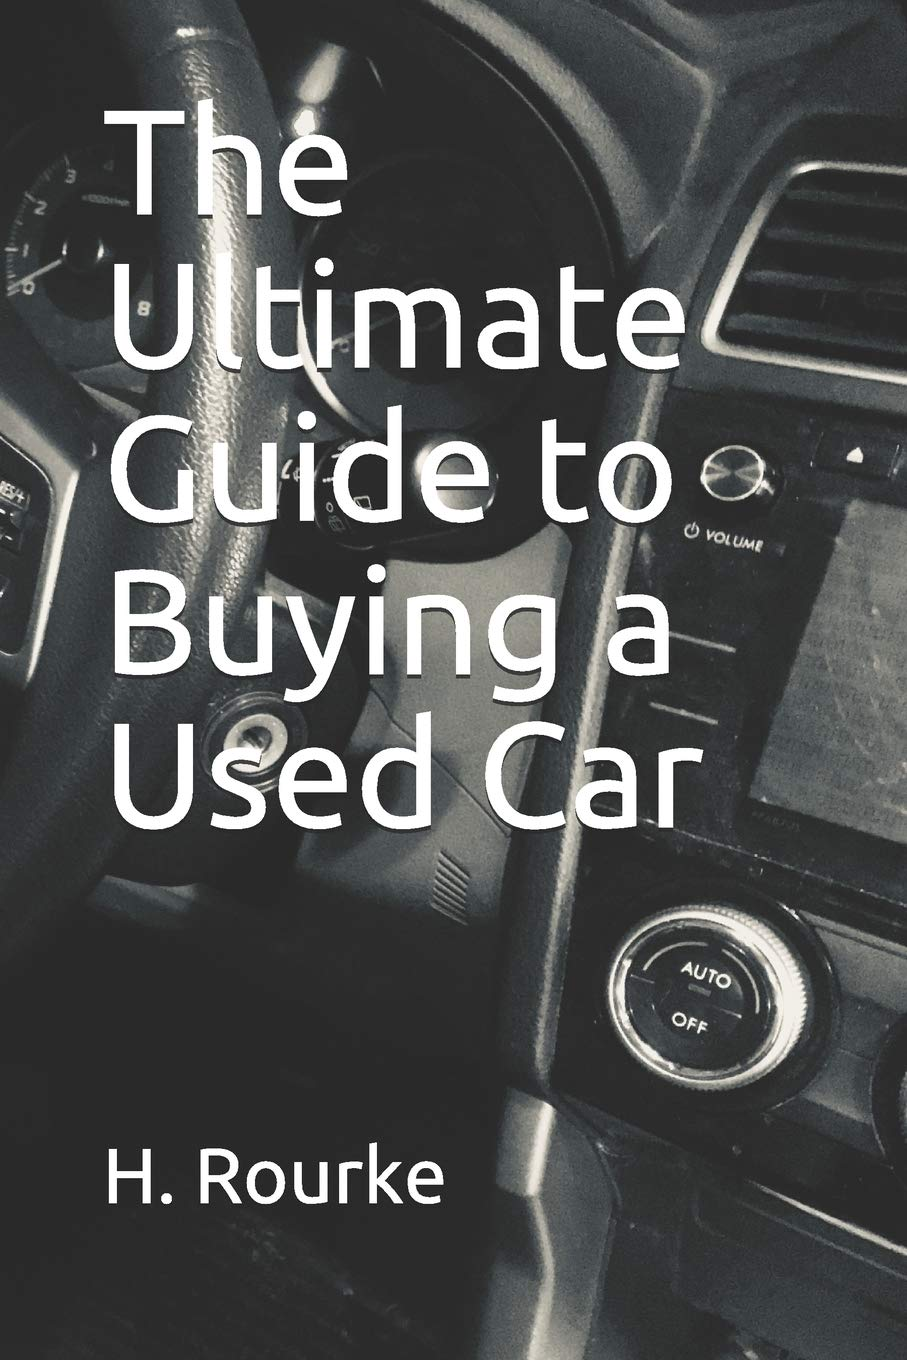 Used Car Buying Checklist >> The Ultimate Guide To Buying A Used Car Includes Free